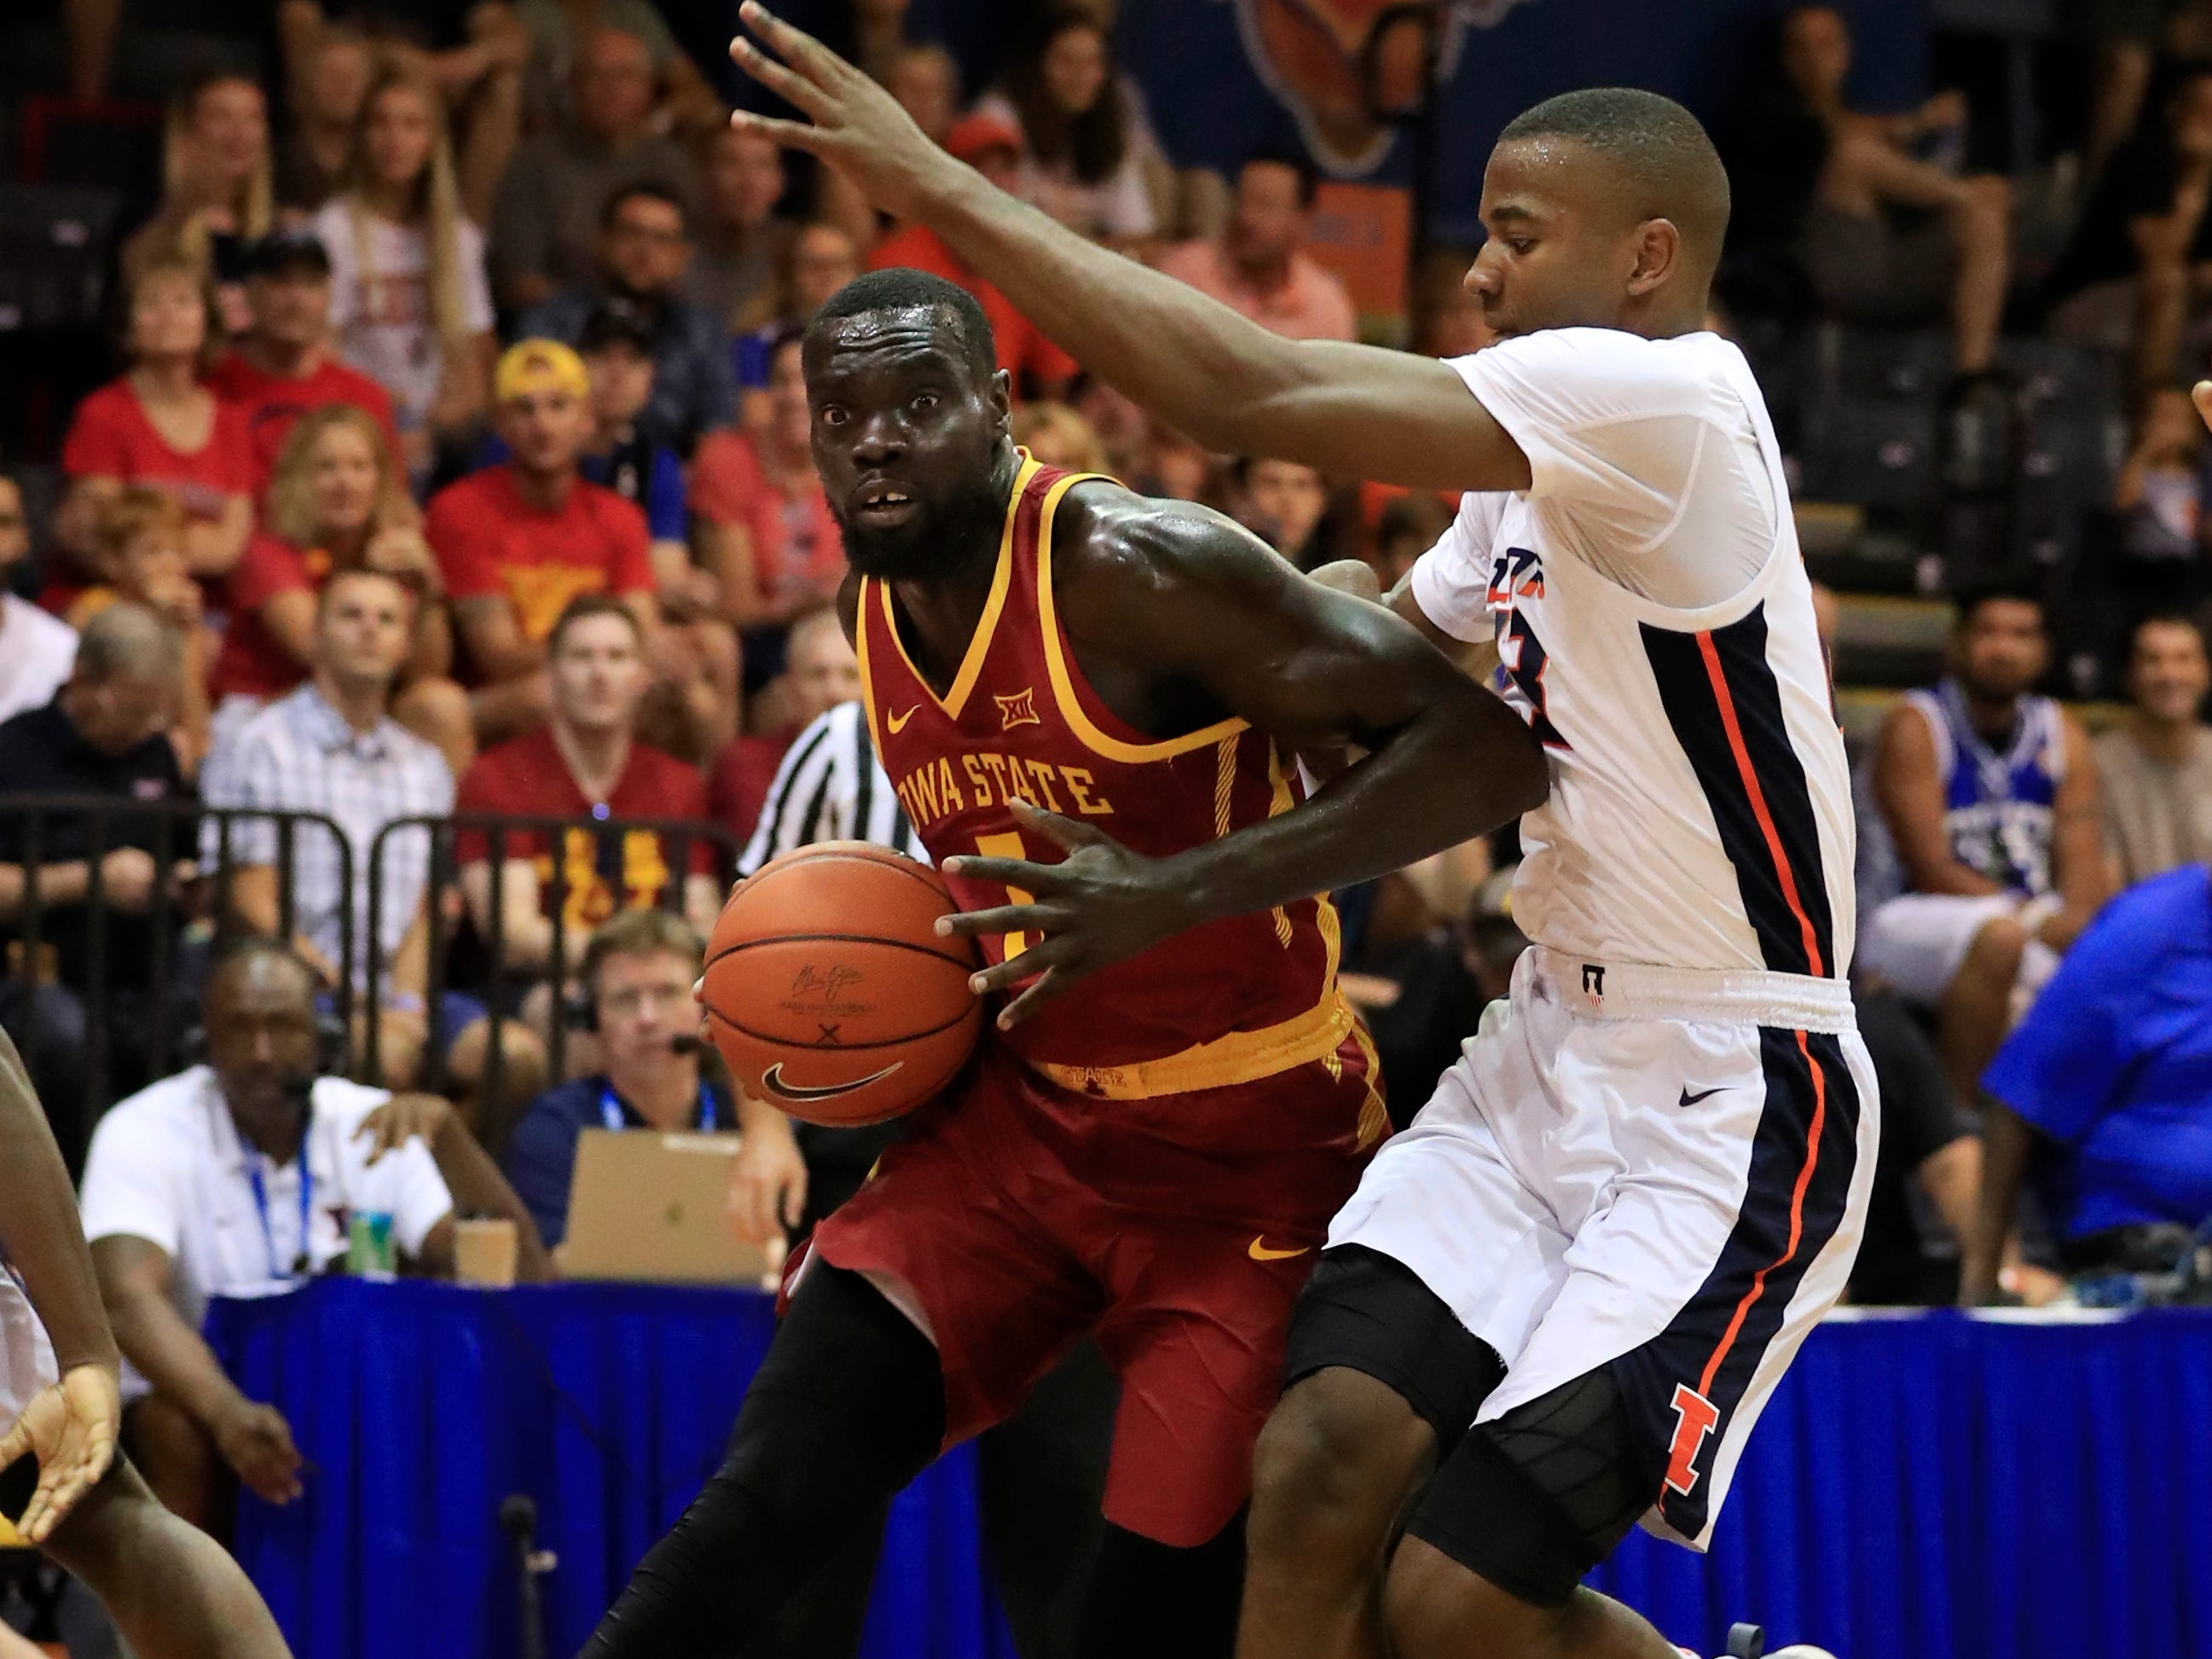 Iowa State guard Marial Shayok (3) tries to work himself past Illinois guard Aaron Jordan (23) during the first half of an NCAA college basketball game at the Maui Invitational, Tuesday, Nov. 20, 2018, in Lahaina, Hawaii. (AP Photo/Marco Garcia)